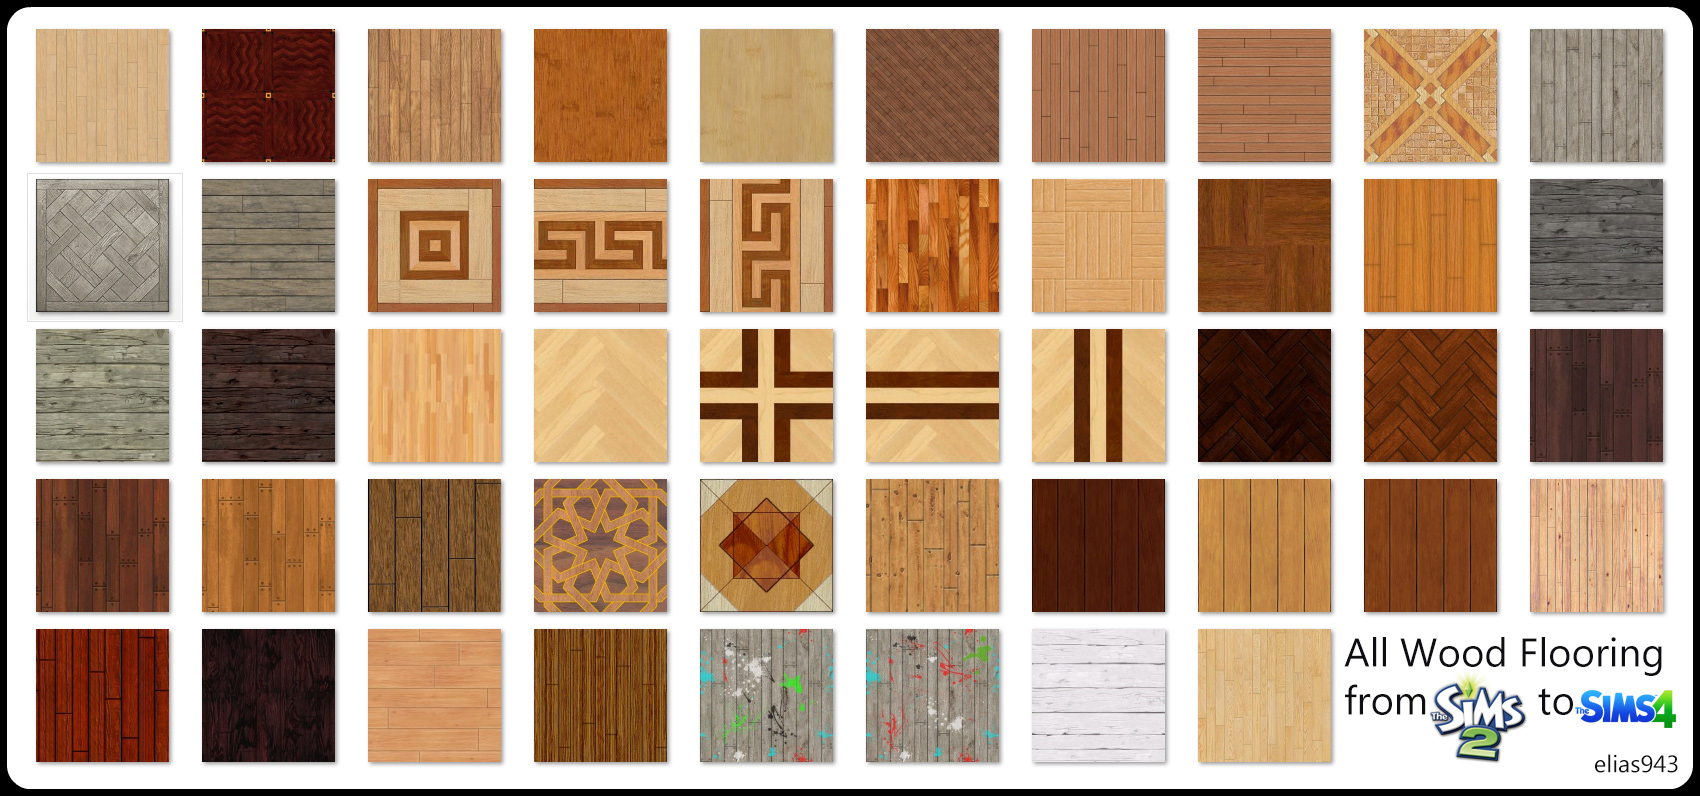 All wood floors from Sims 2 to 4 by Elias943